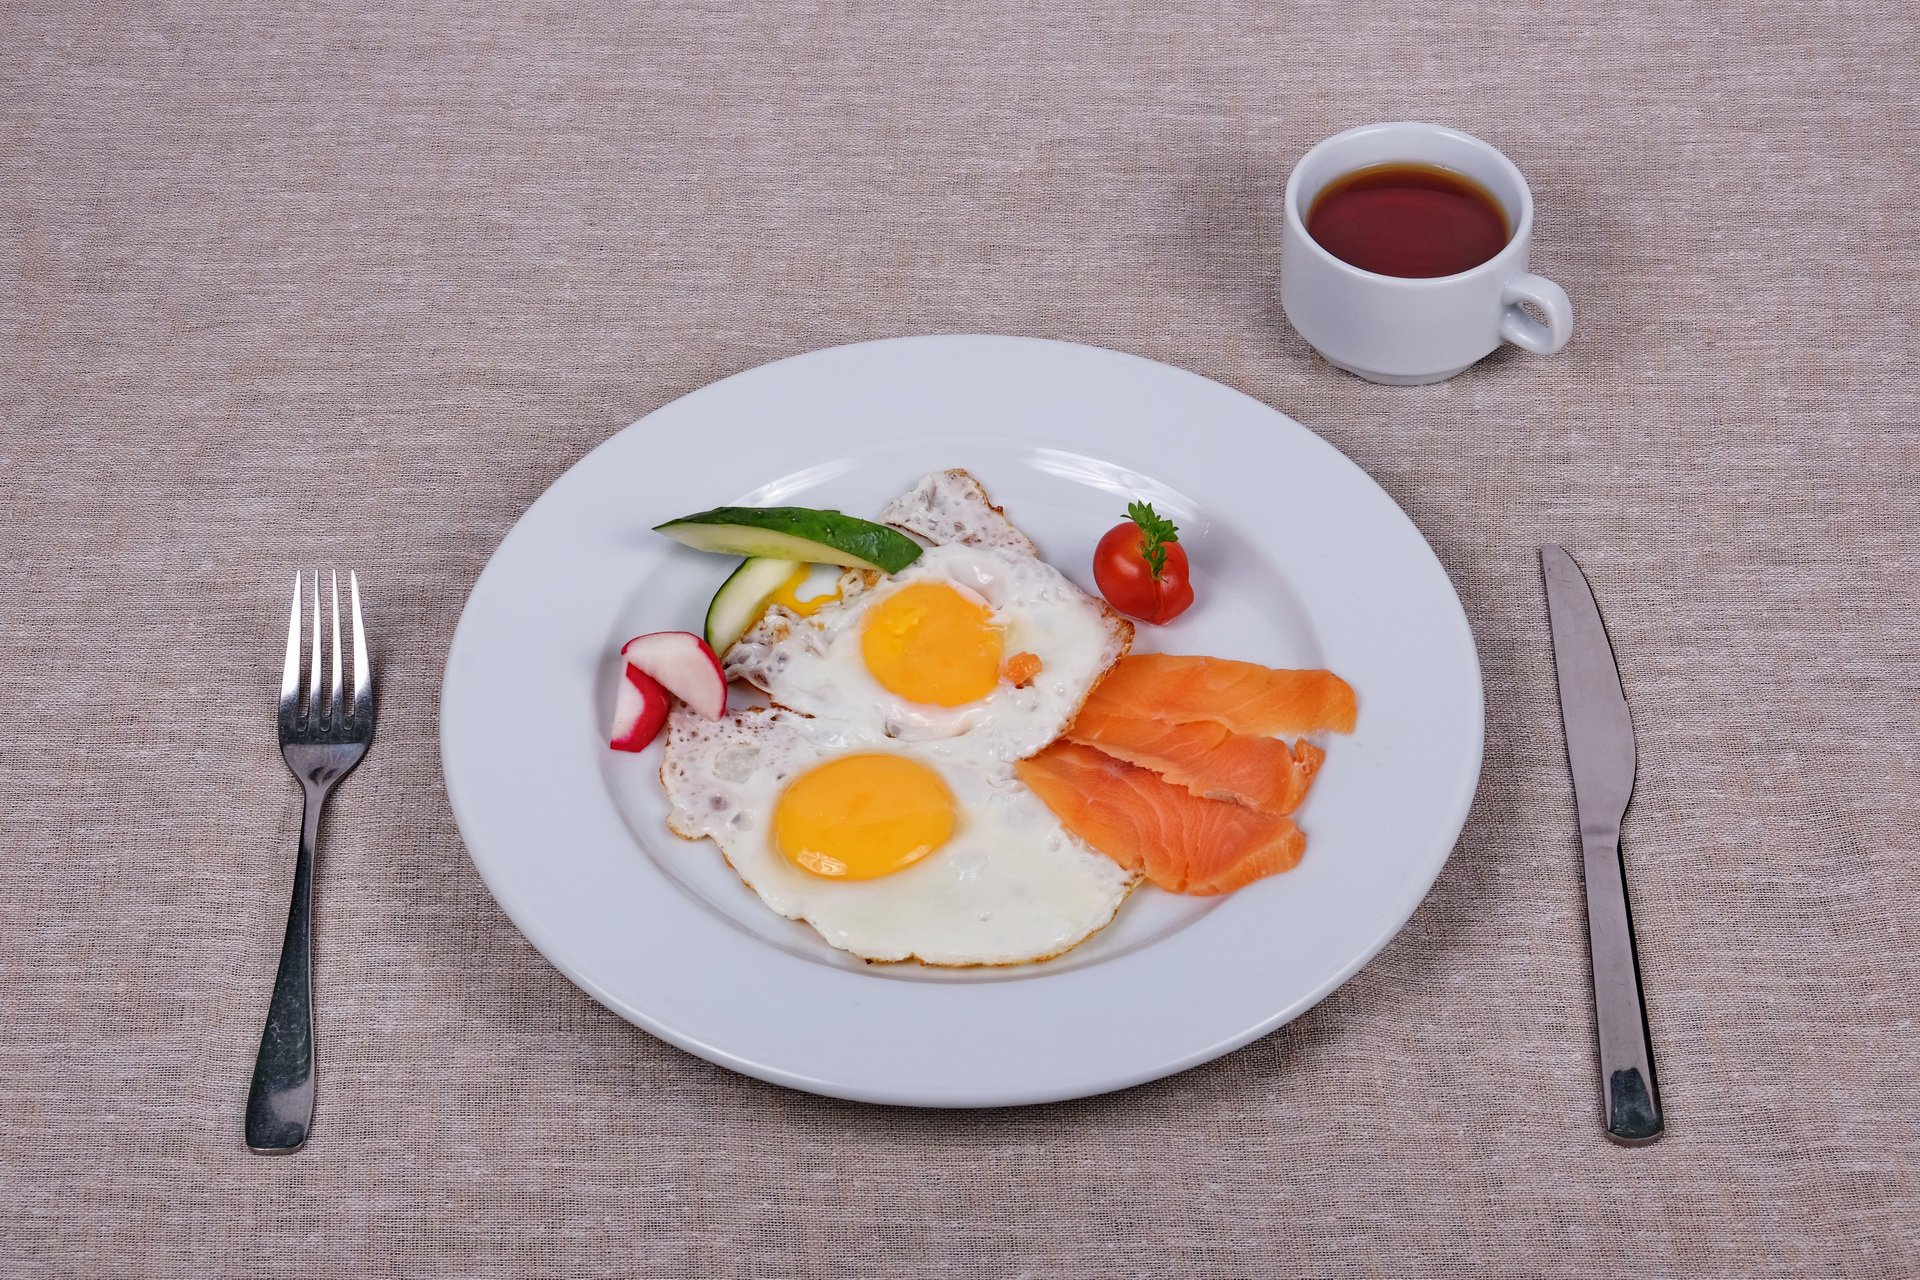 Sunny-side-up or scrambled eggs